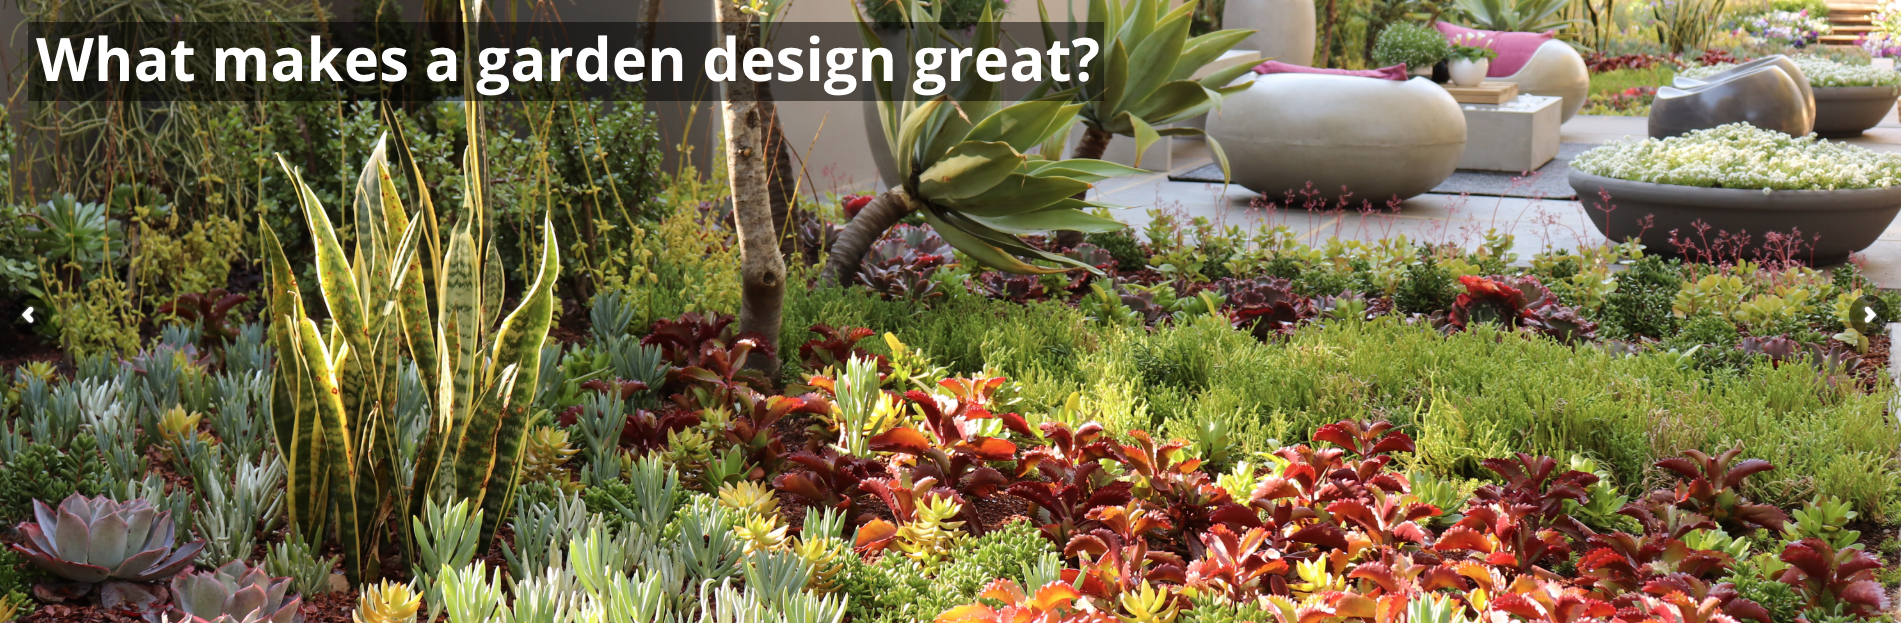 DIY Garden Design - Online Course - Life is a Garden